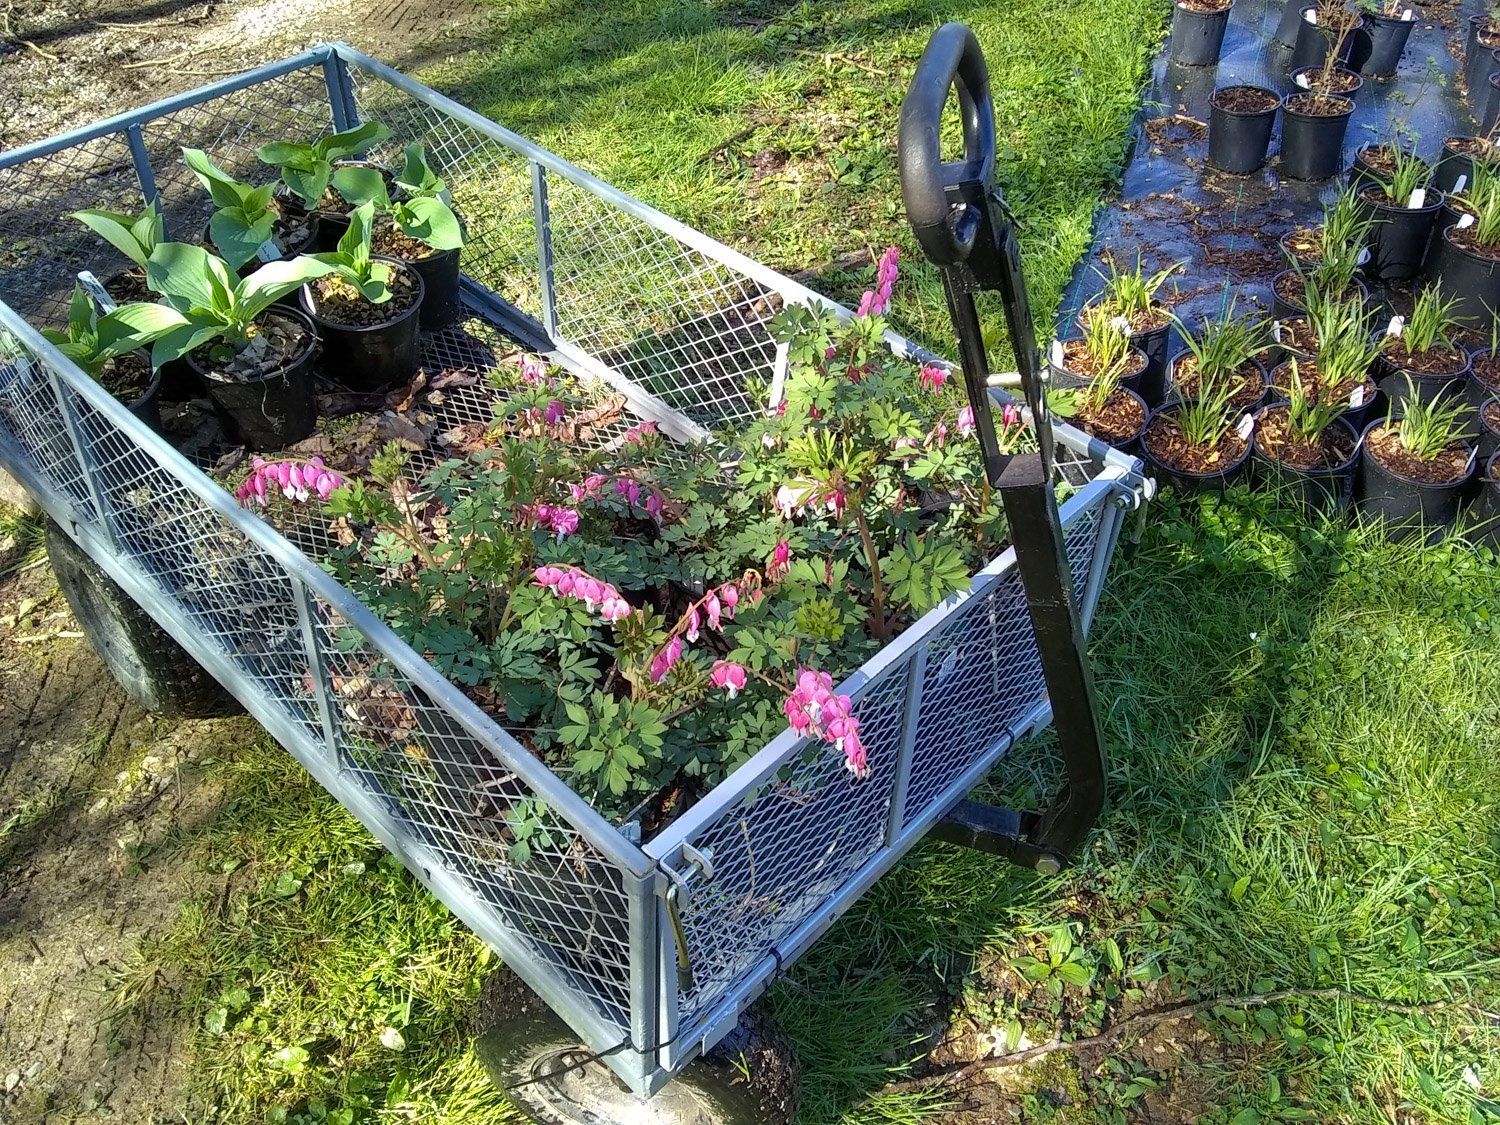 Gray mesh nursery wagon loaded with blooming pink bleeding heart and hosta